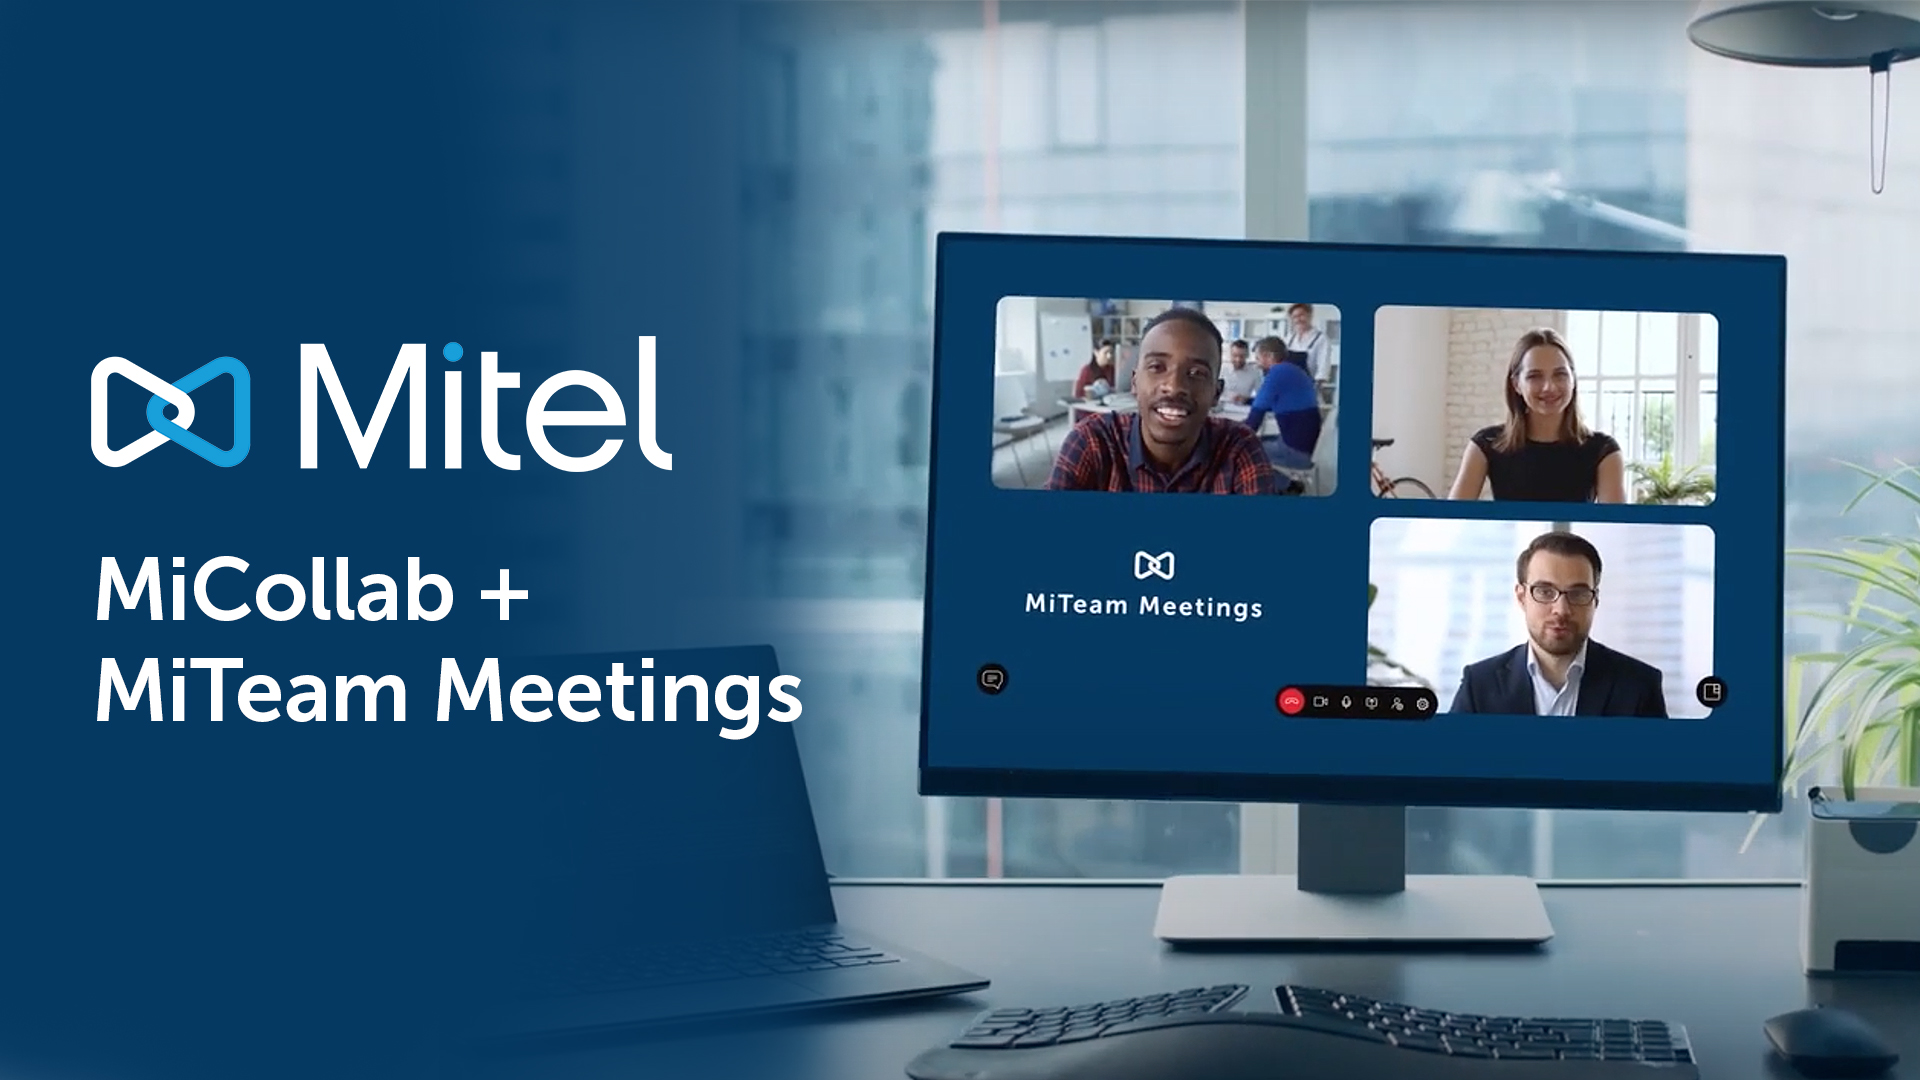 Mitel Collaboration Solutions